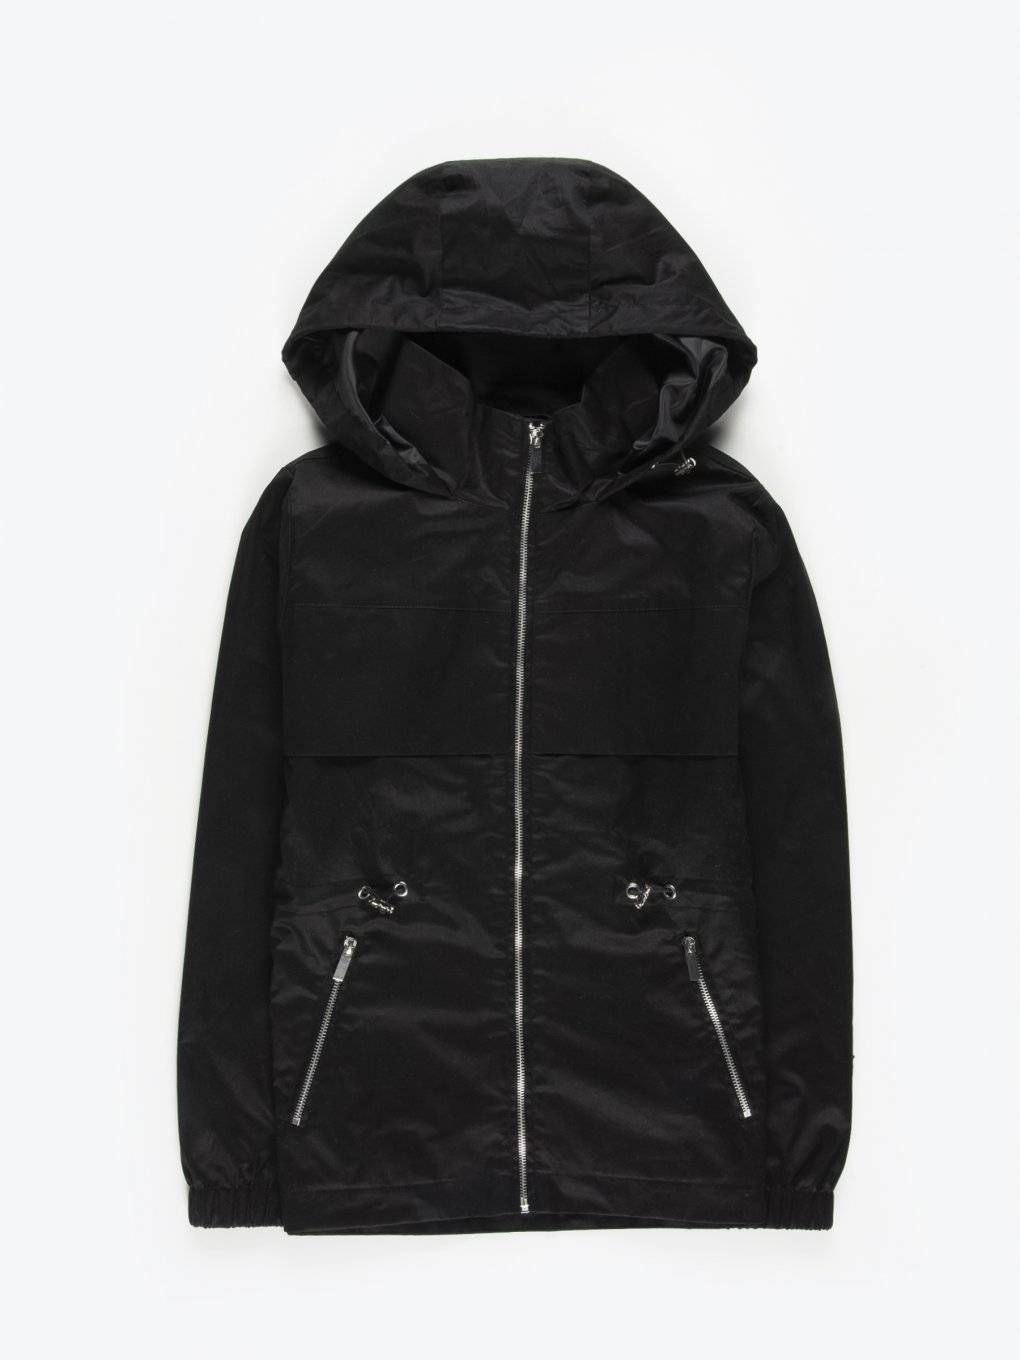 Hooded jacket